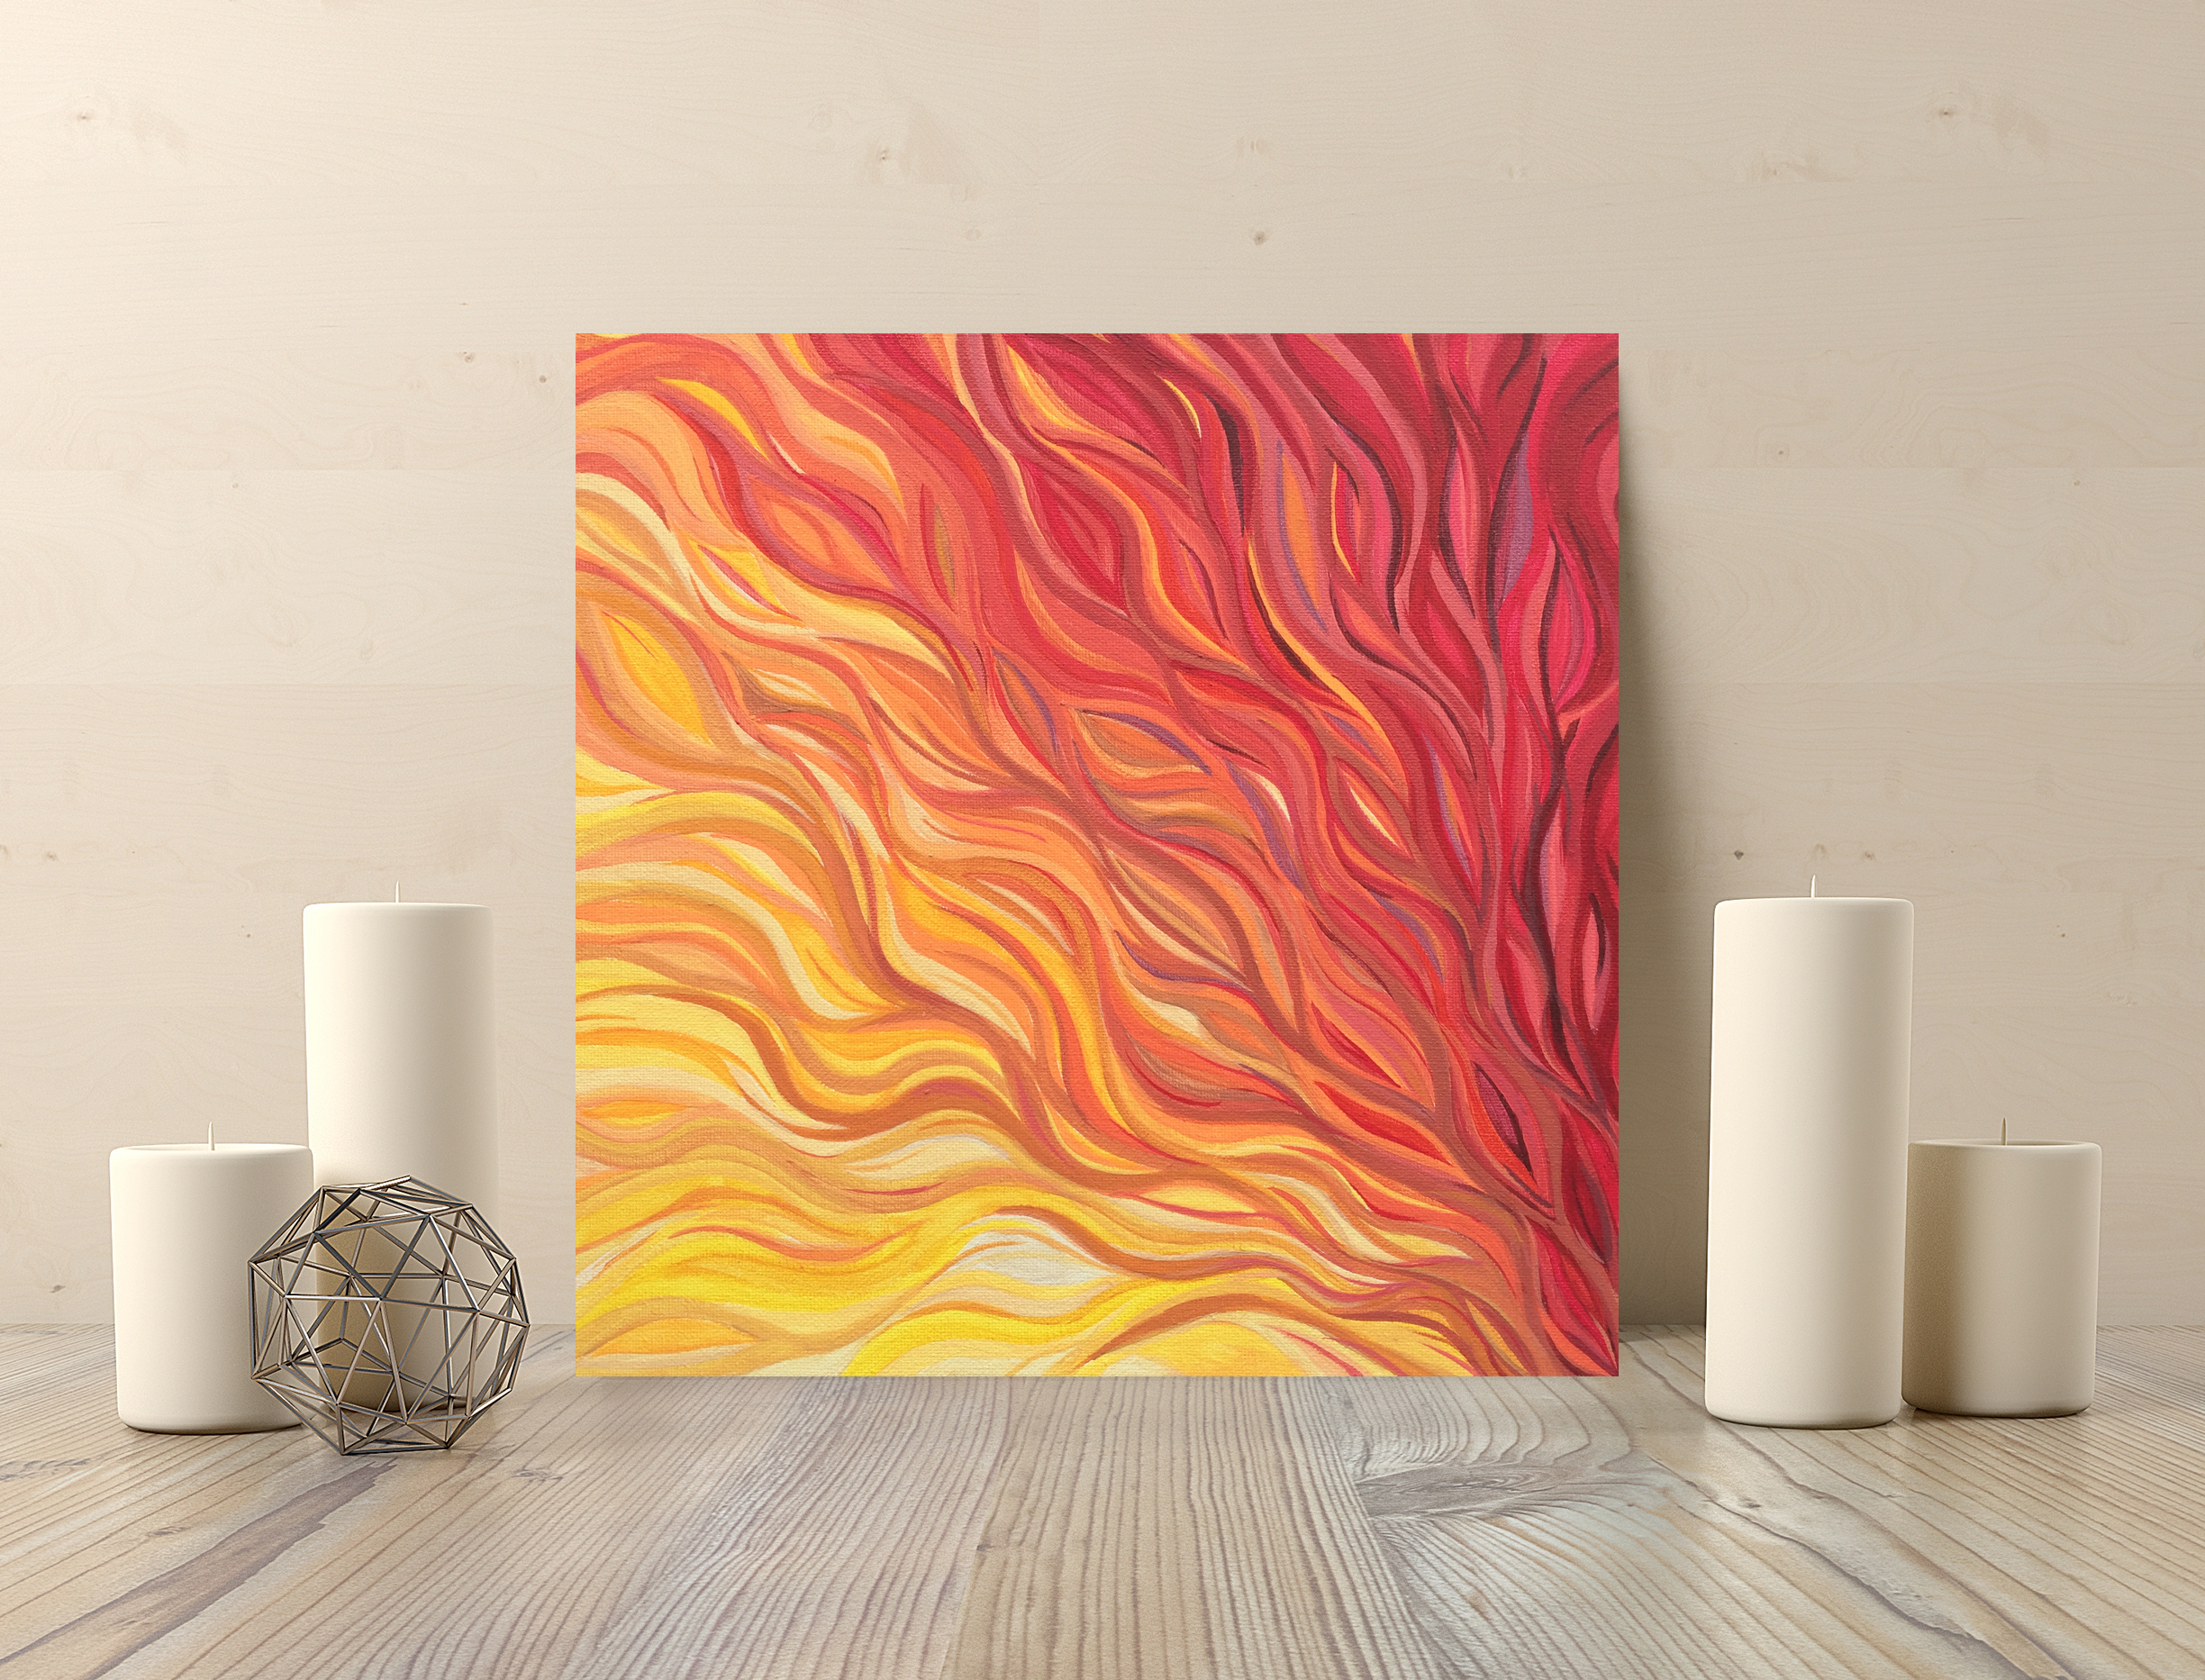 Ignition 12x12in $140